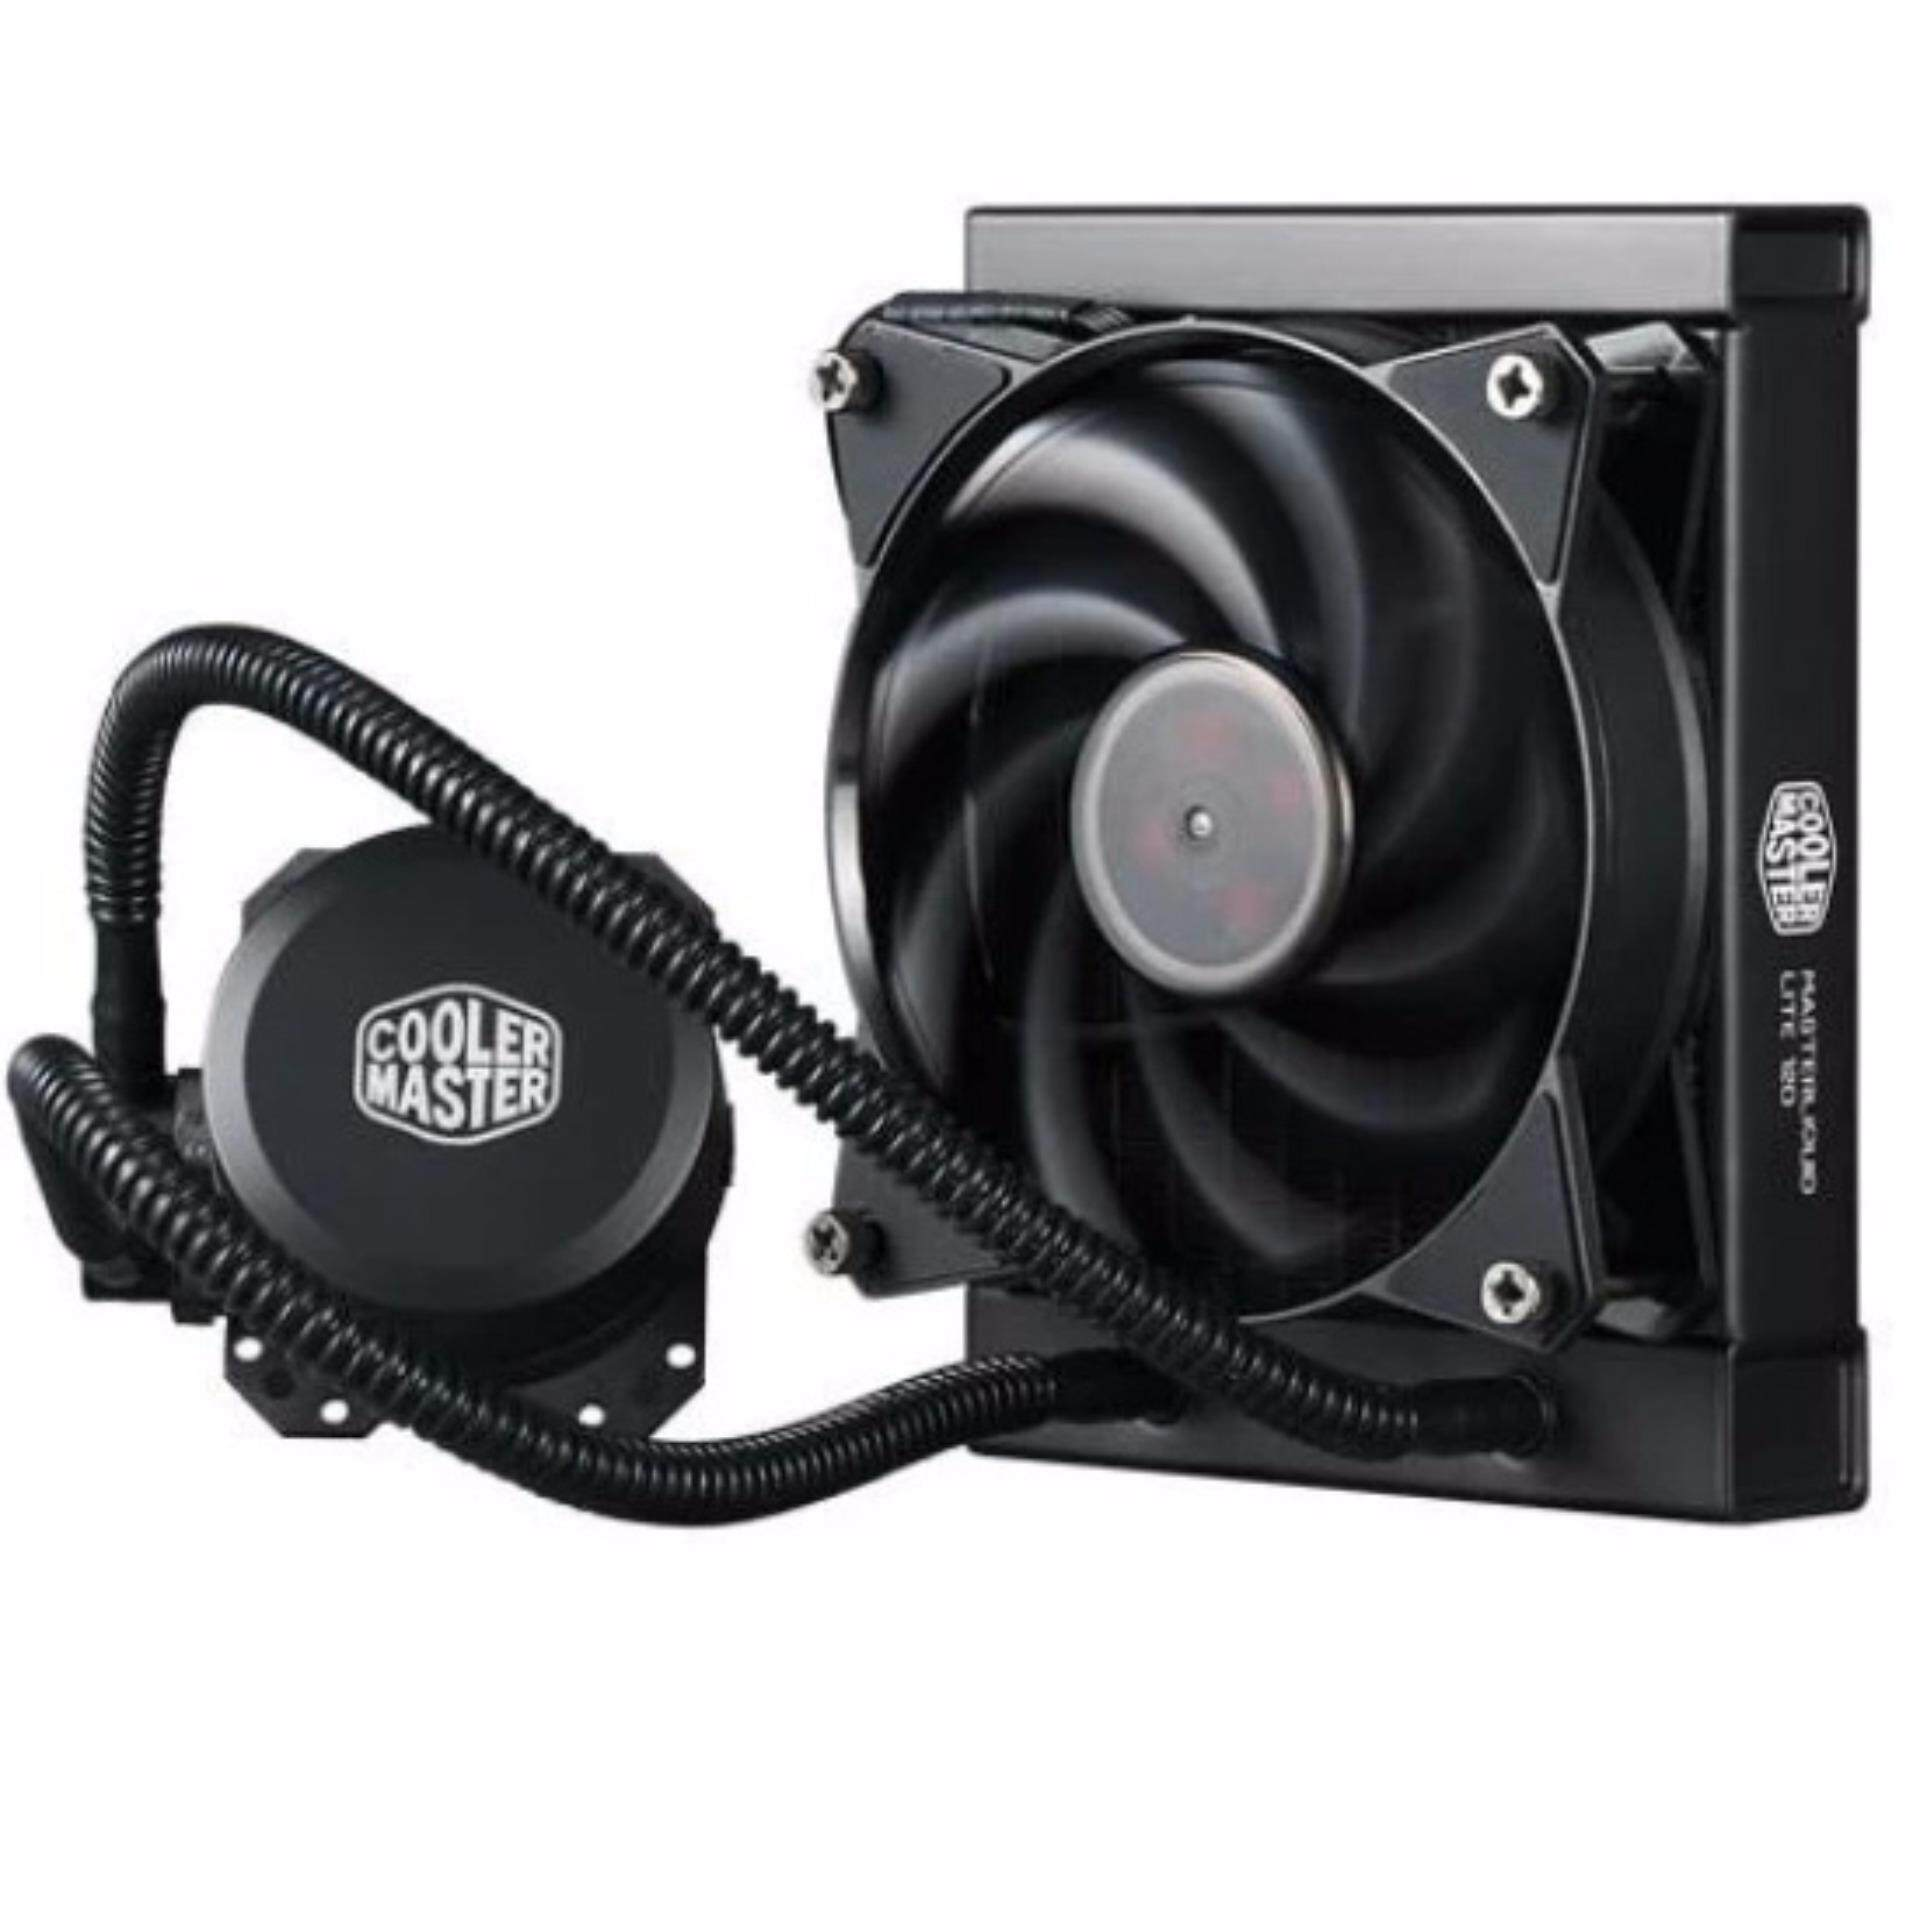 Official Cooler Master MasterLiquid Lite 120 AIO CPU Water Cooler (MLW-D12M-A20PW-R1)